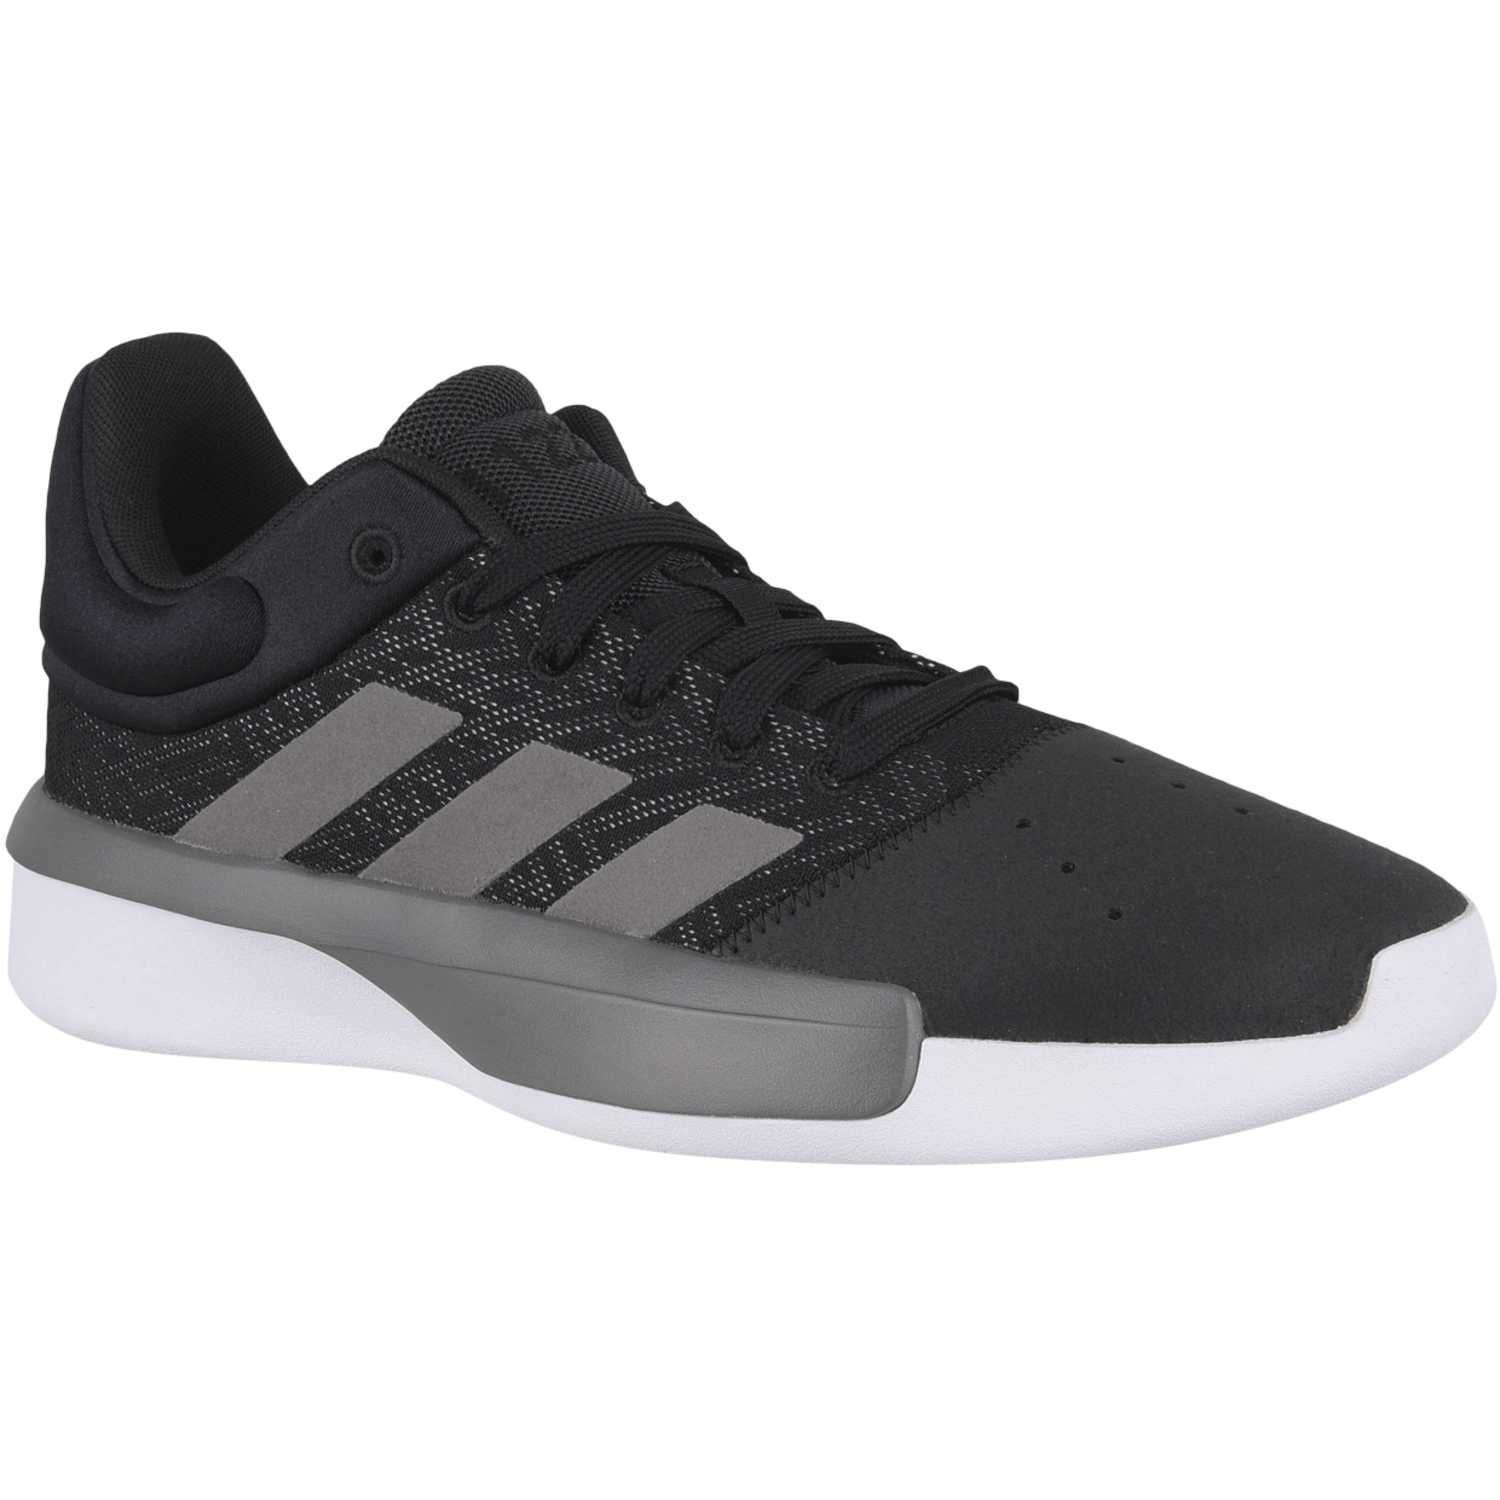 Adidas pro adversary low 2019 Negro / blanco Hombres ...